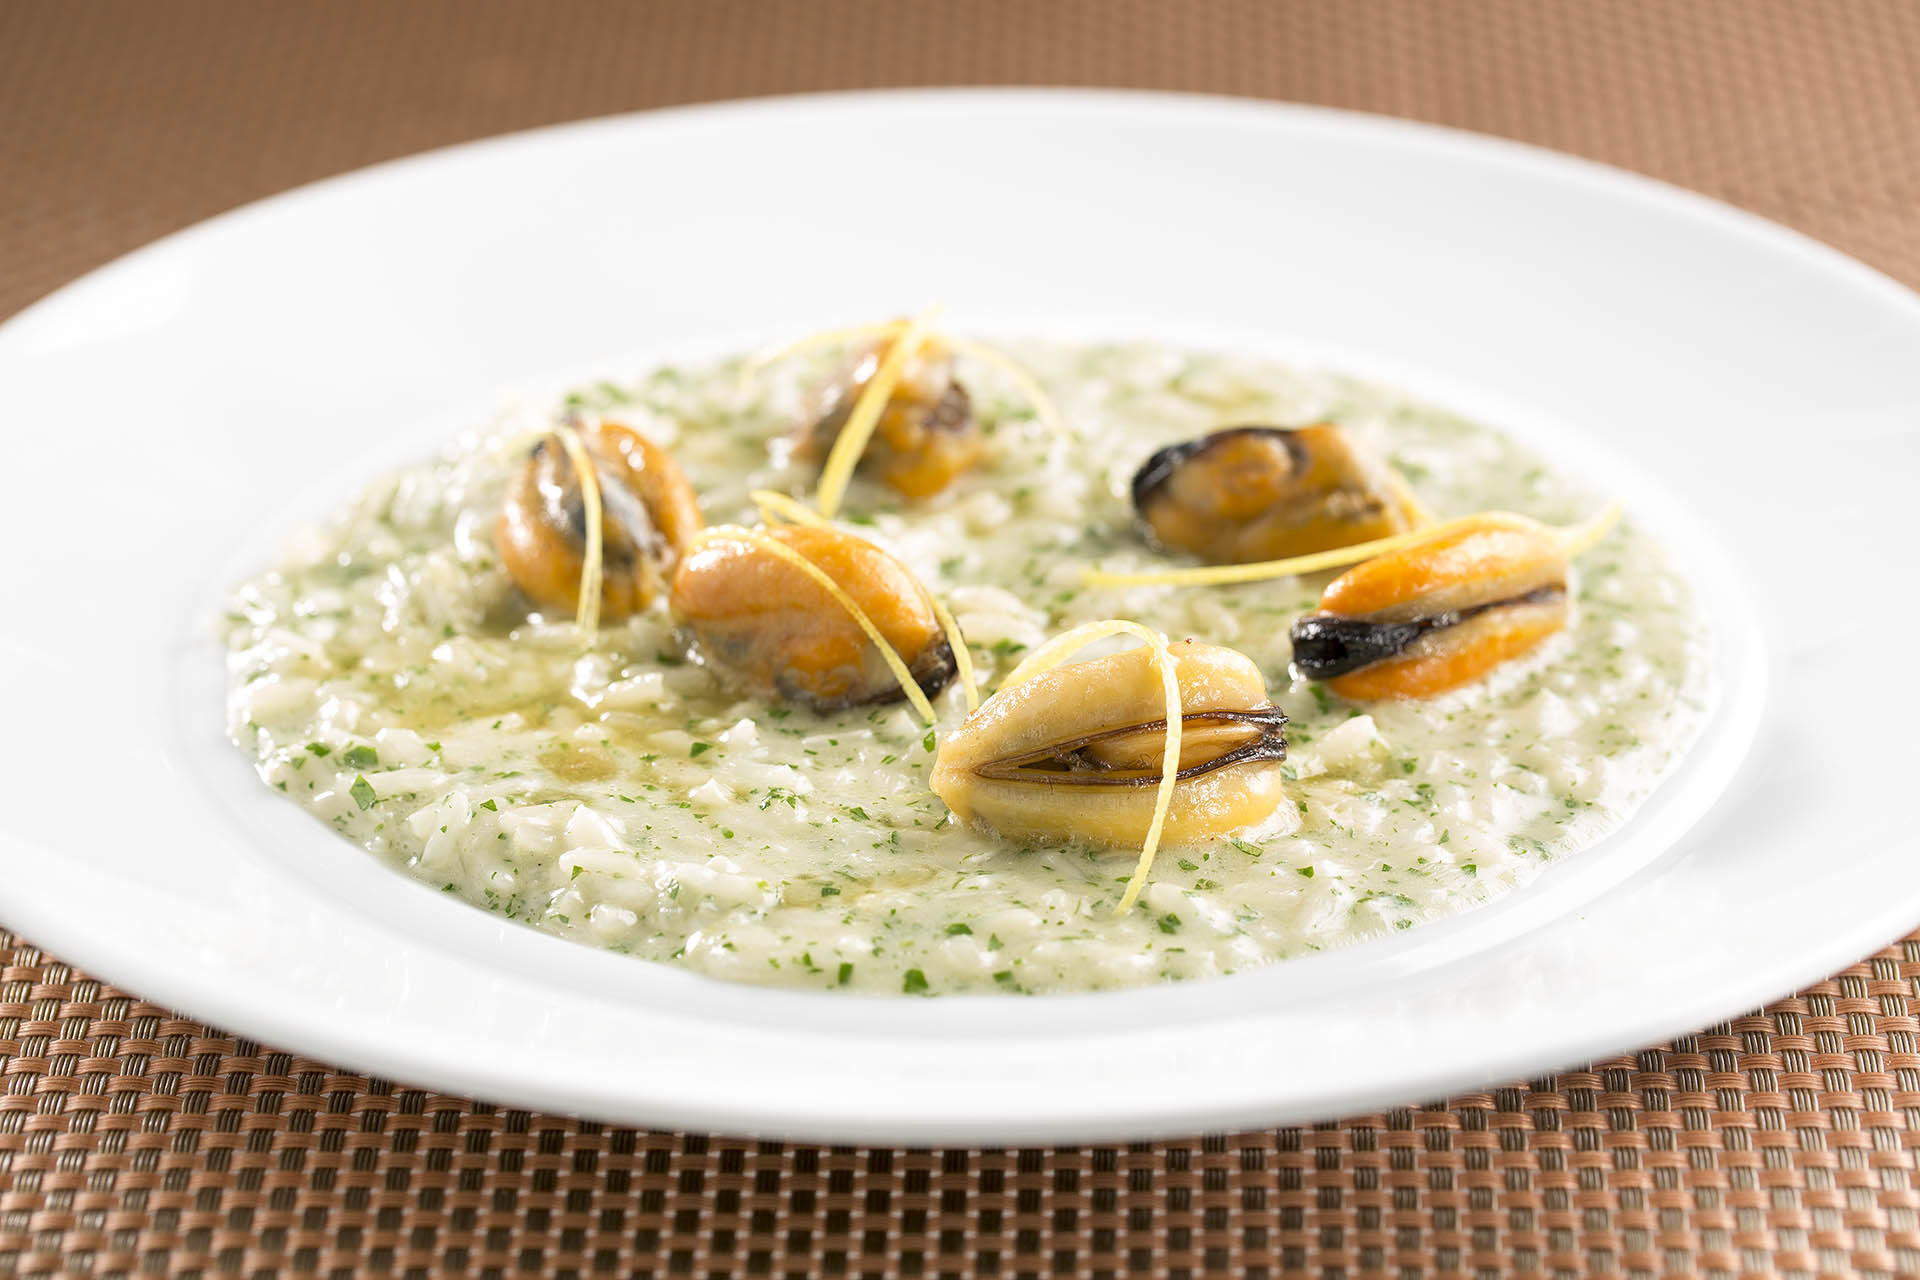 Risotto-Cozze-e-Limone_risotto_Salt-Spring-Mussels_and_lemon-zest_009-1920×1280